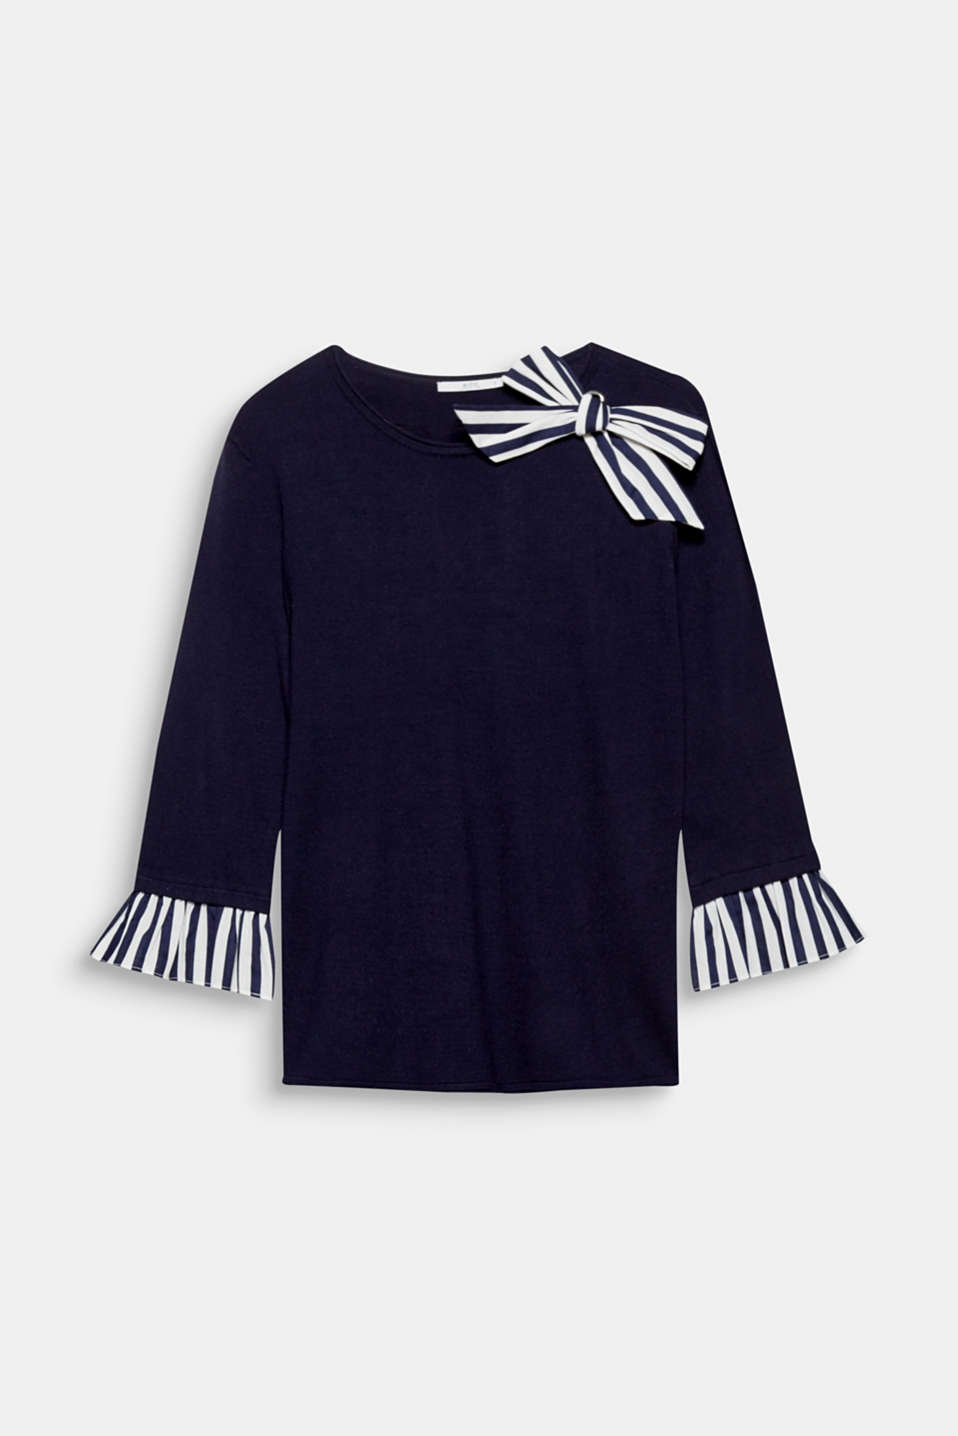 This soft fine knit jumper with a bow and flounce in a nautical striped fabric is so feminine and has a love of detail.